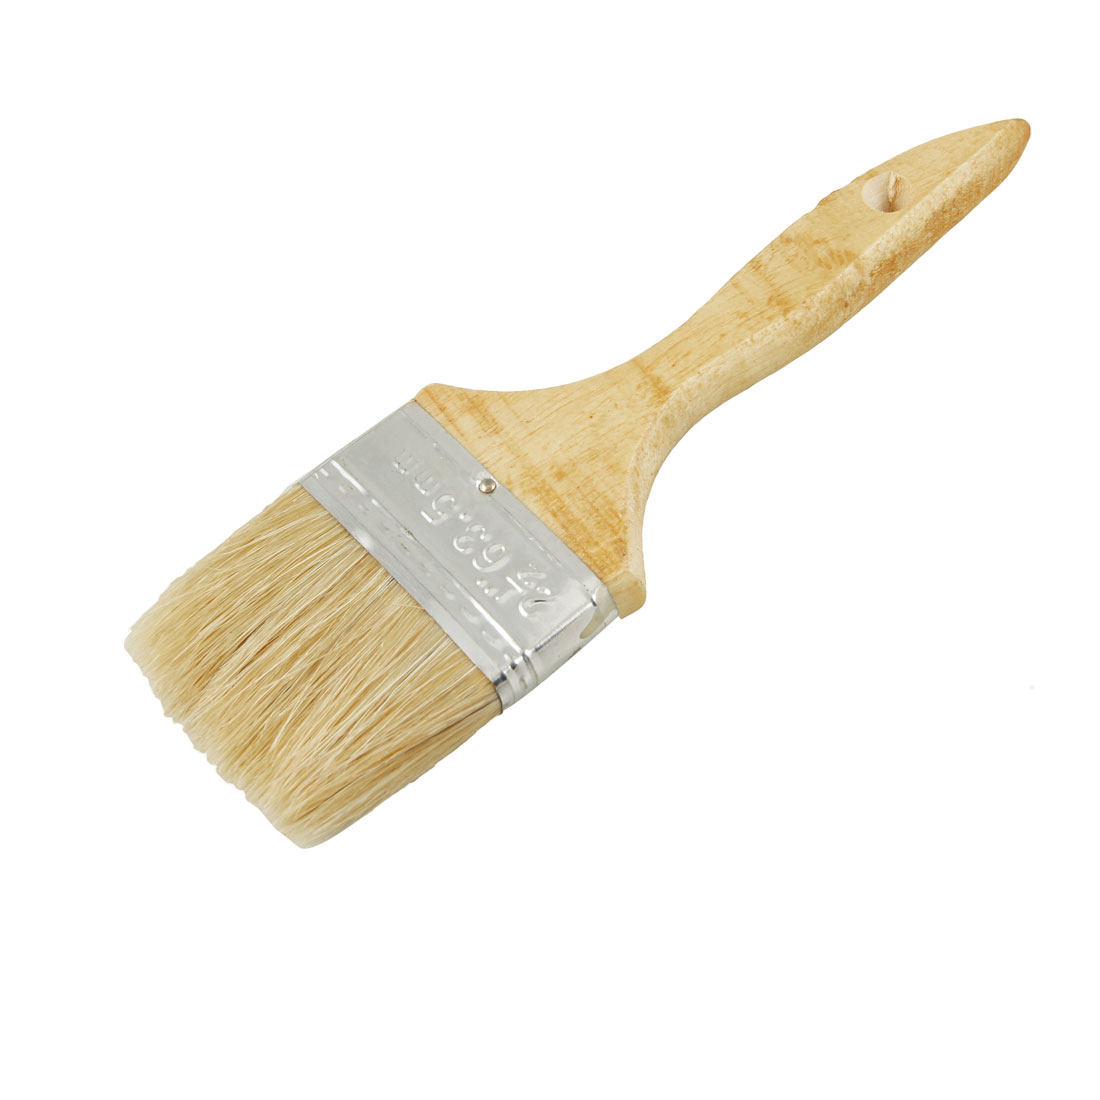 "2.5"" Bristle Hair Wooden Handle Painting Paint Brush for Furniture"